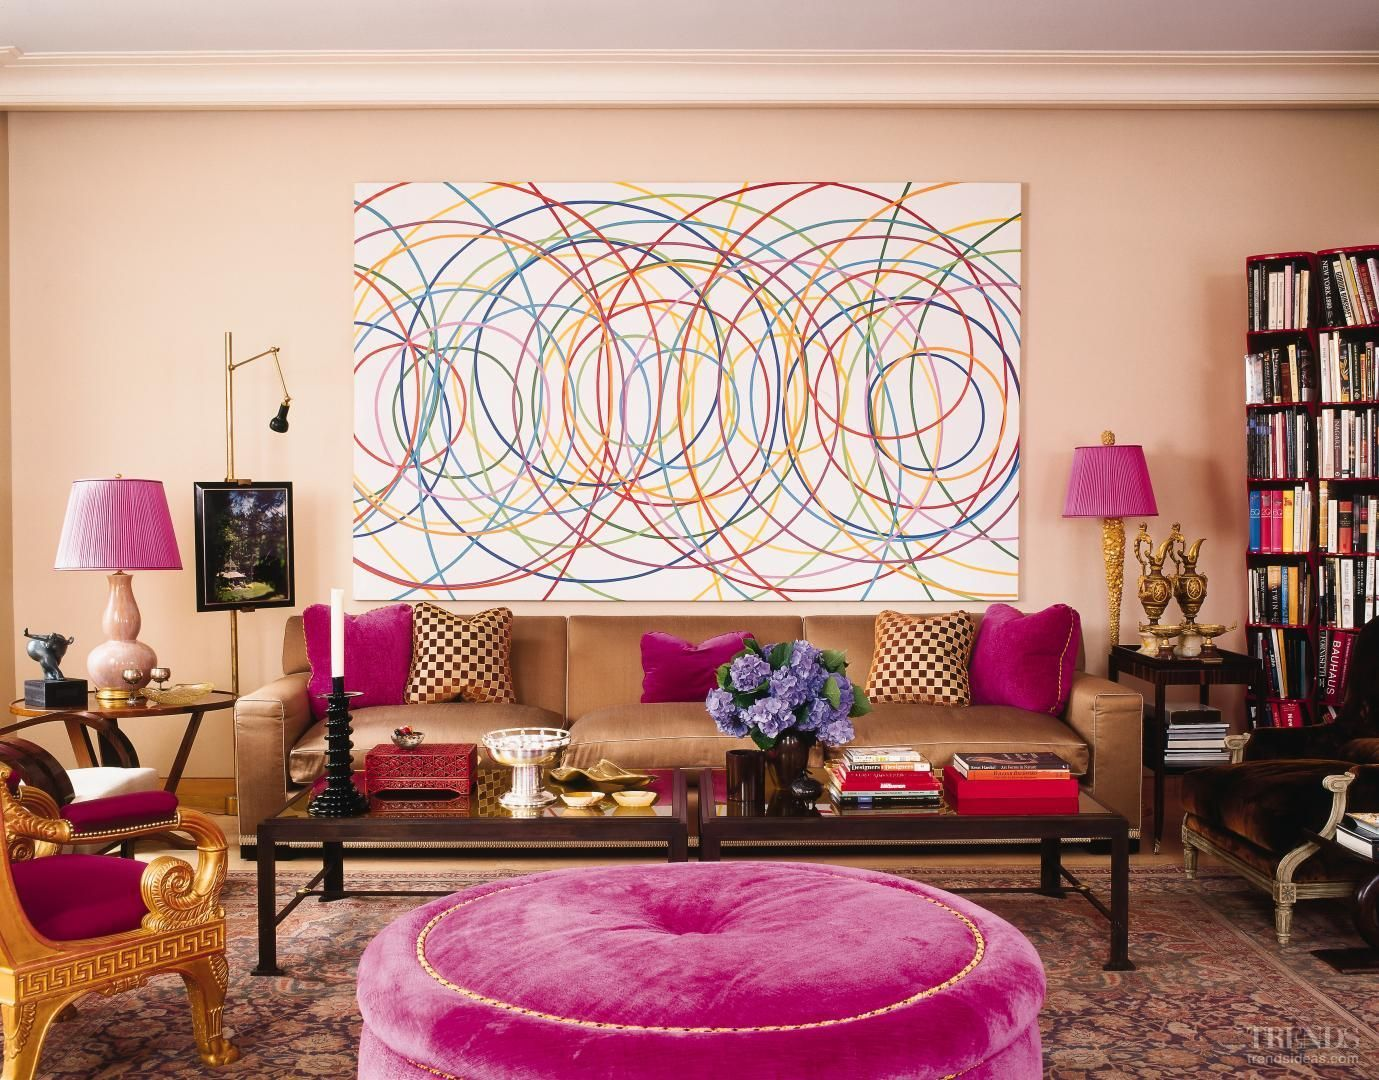 Image result for fuschia and teal interior design | Interior D-ZIGN ...